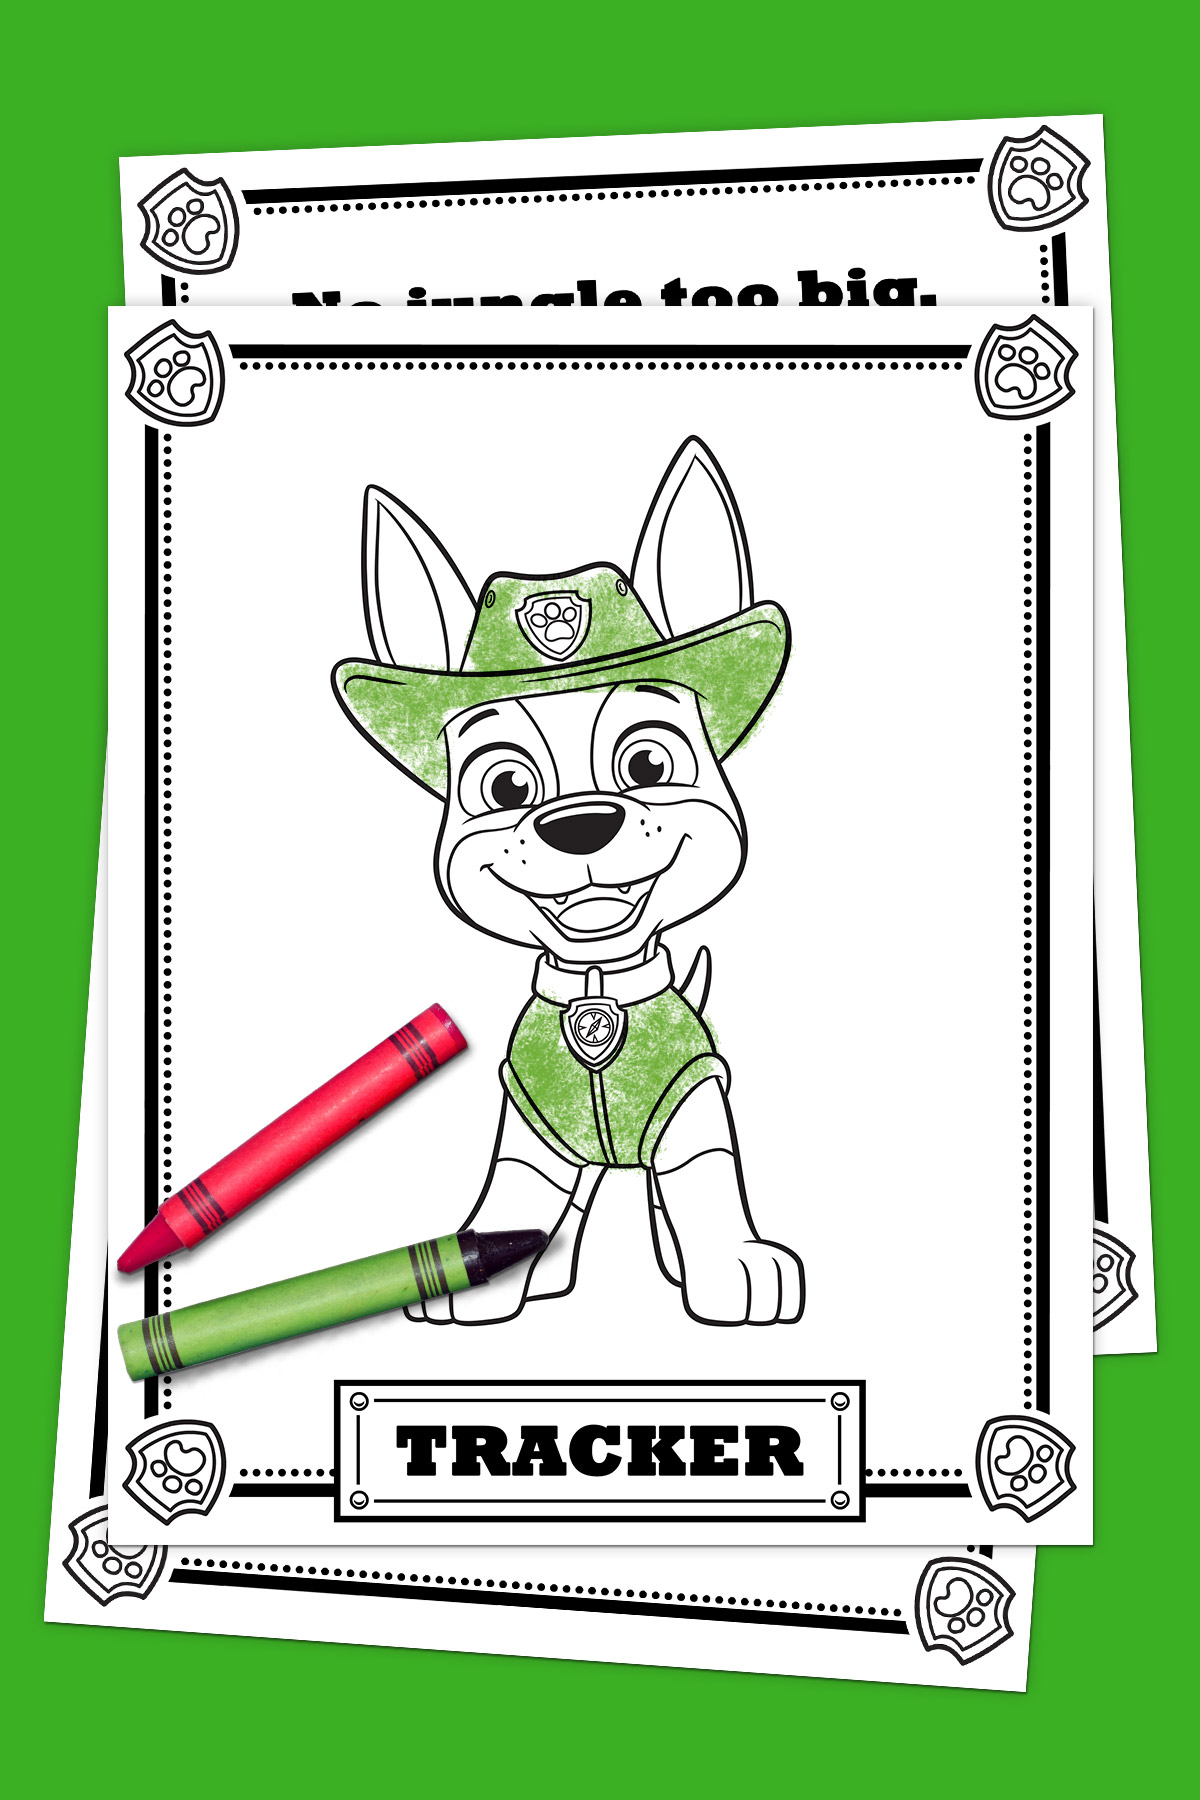 PAW Patrol Tracker Coloring Pack